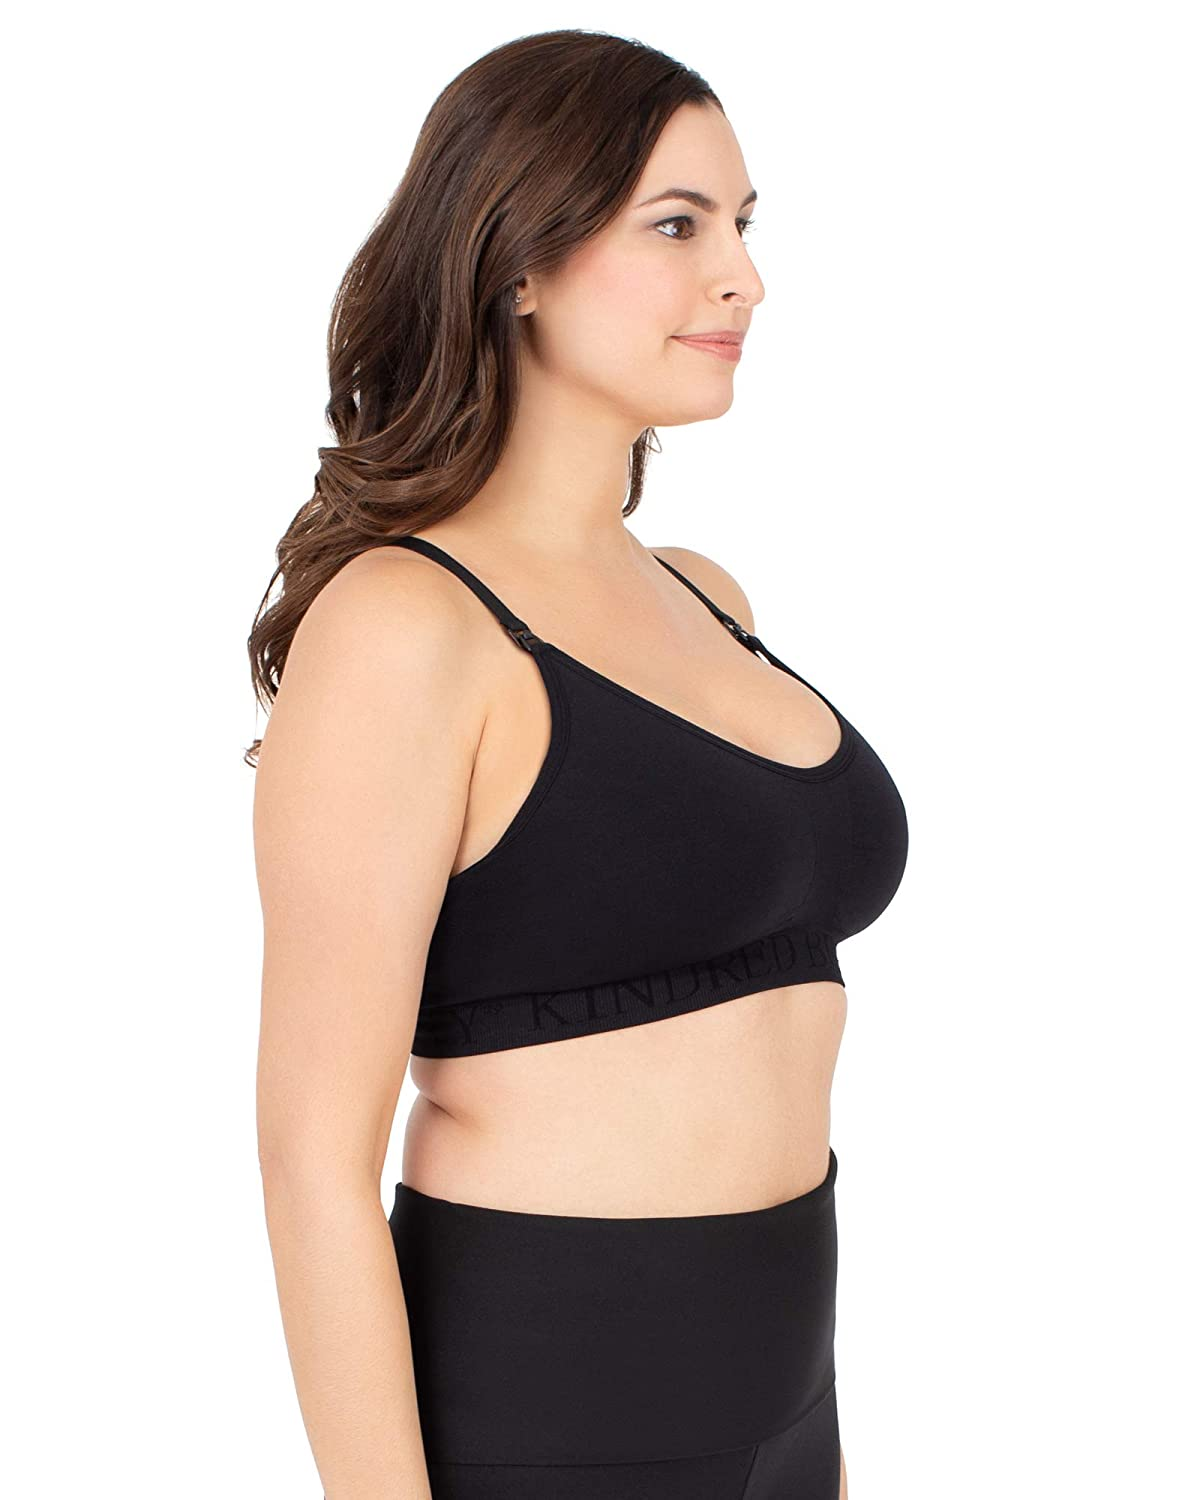 b1c9f102ca Kindred Bravely Sublime Support Low Impact Nursing   Maternity Sports Bra ( Black